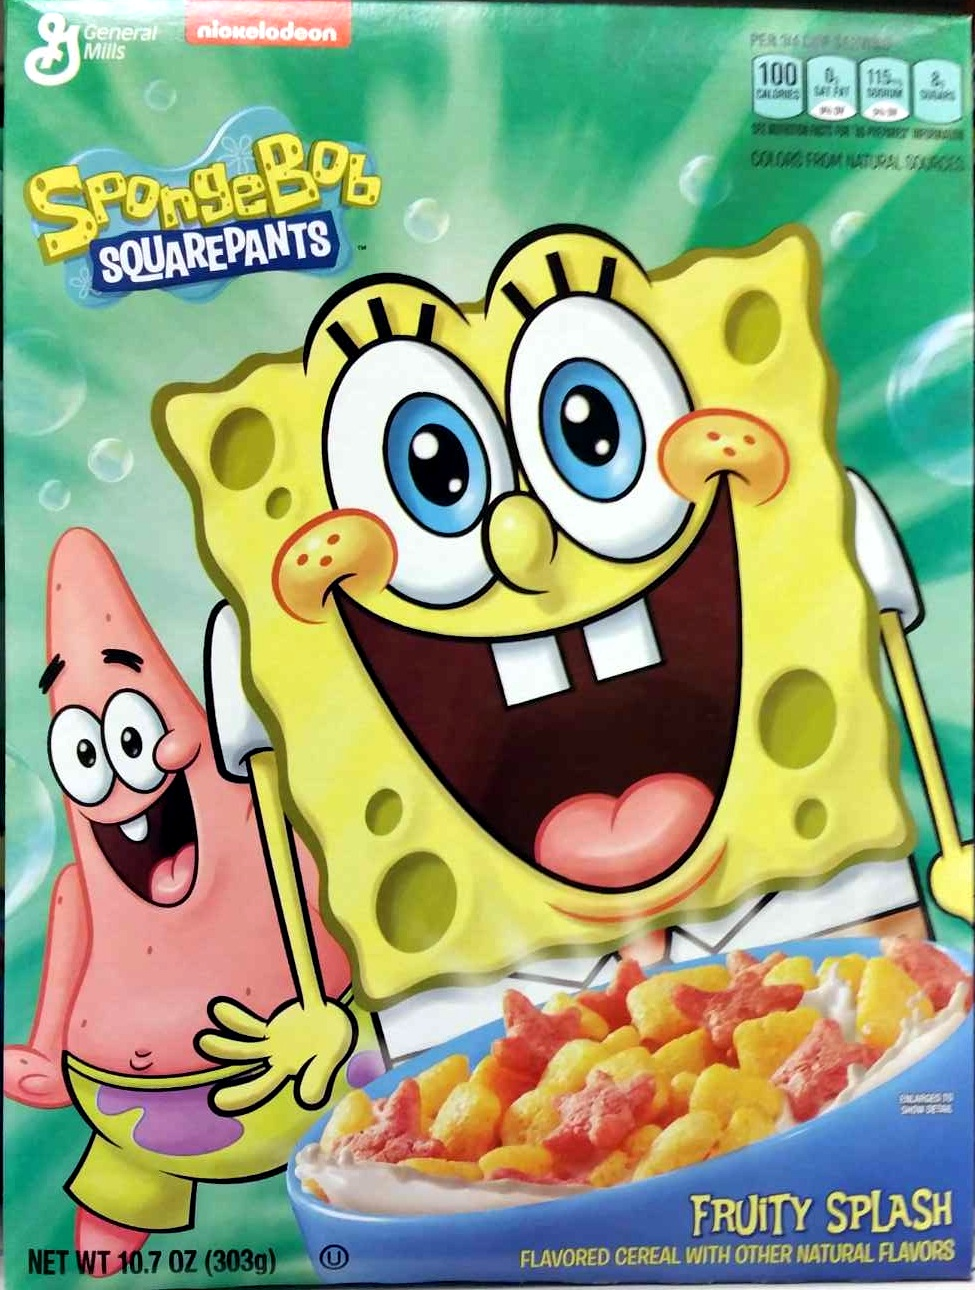 Spongebob Squarepants Fruity Splash - Product - en